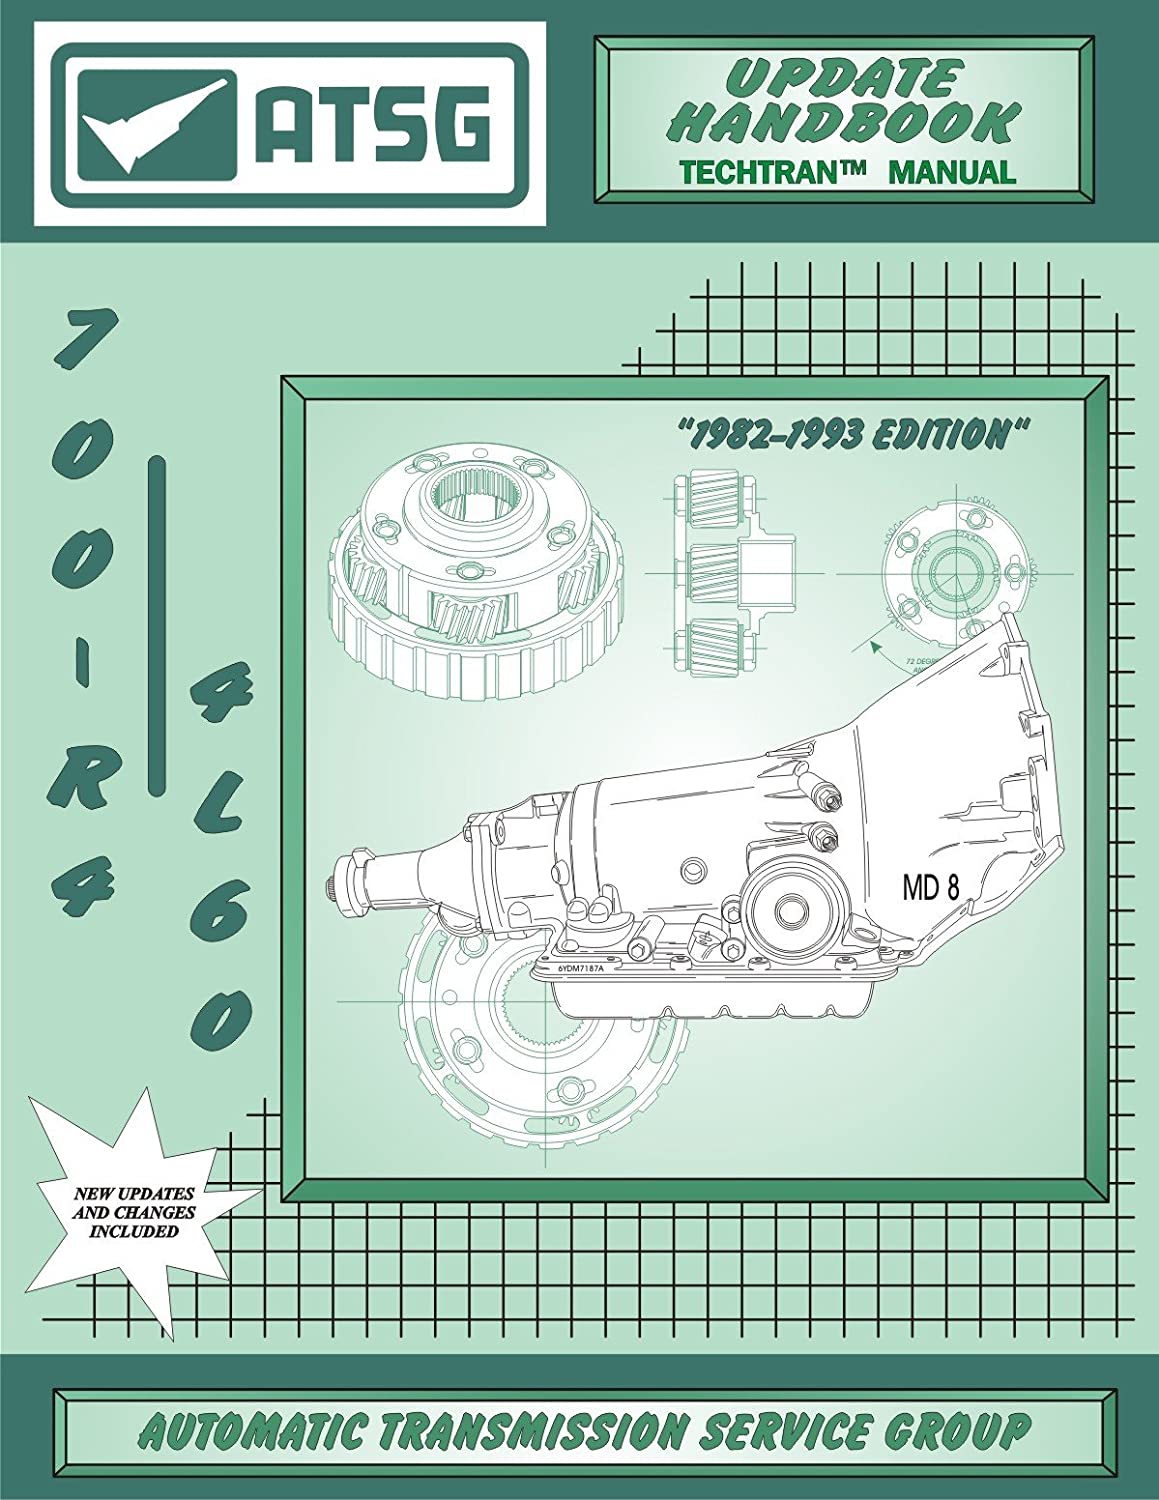 gm 700r4 wiring diagram atsg 700 r4 update handbook gm transmission repair manual  700r4  gm transmission repair manual